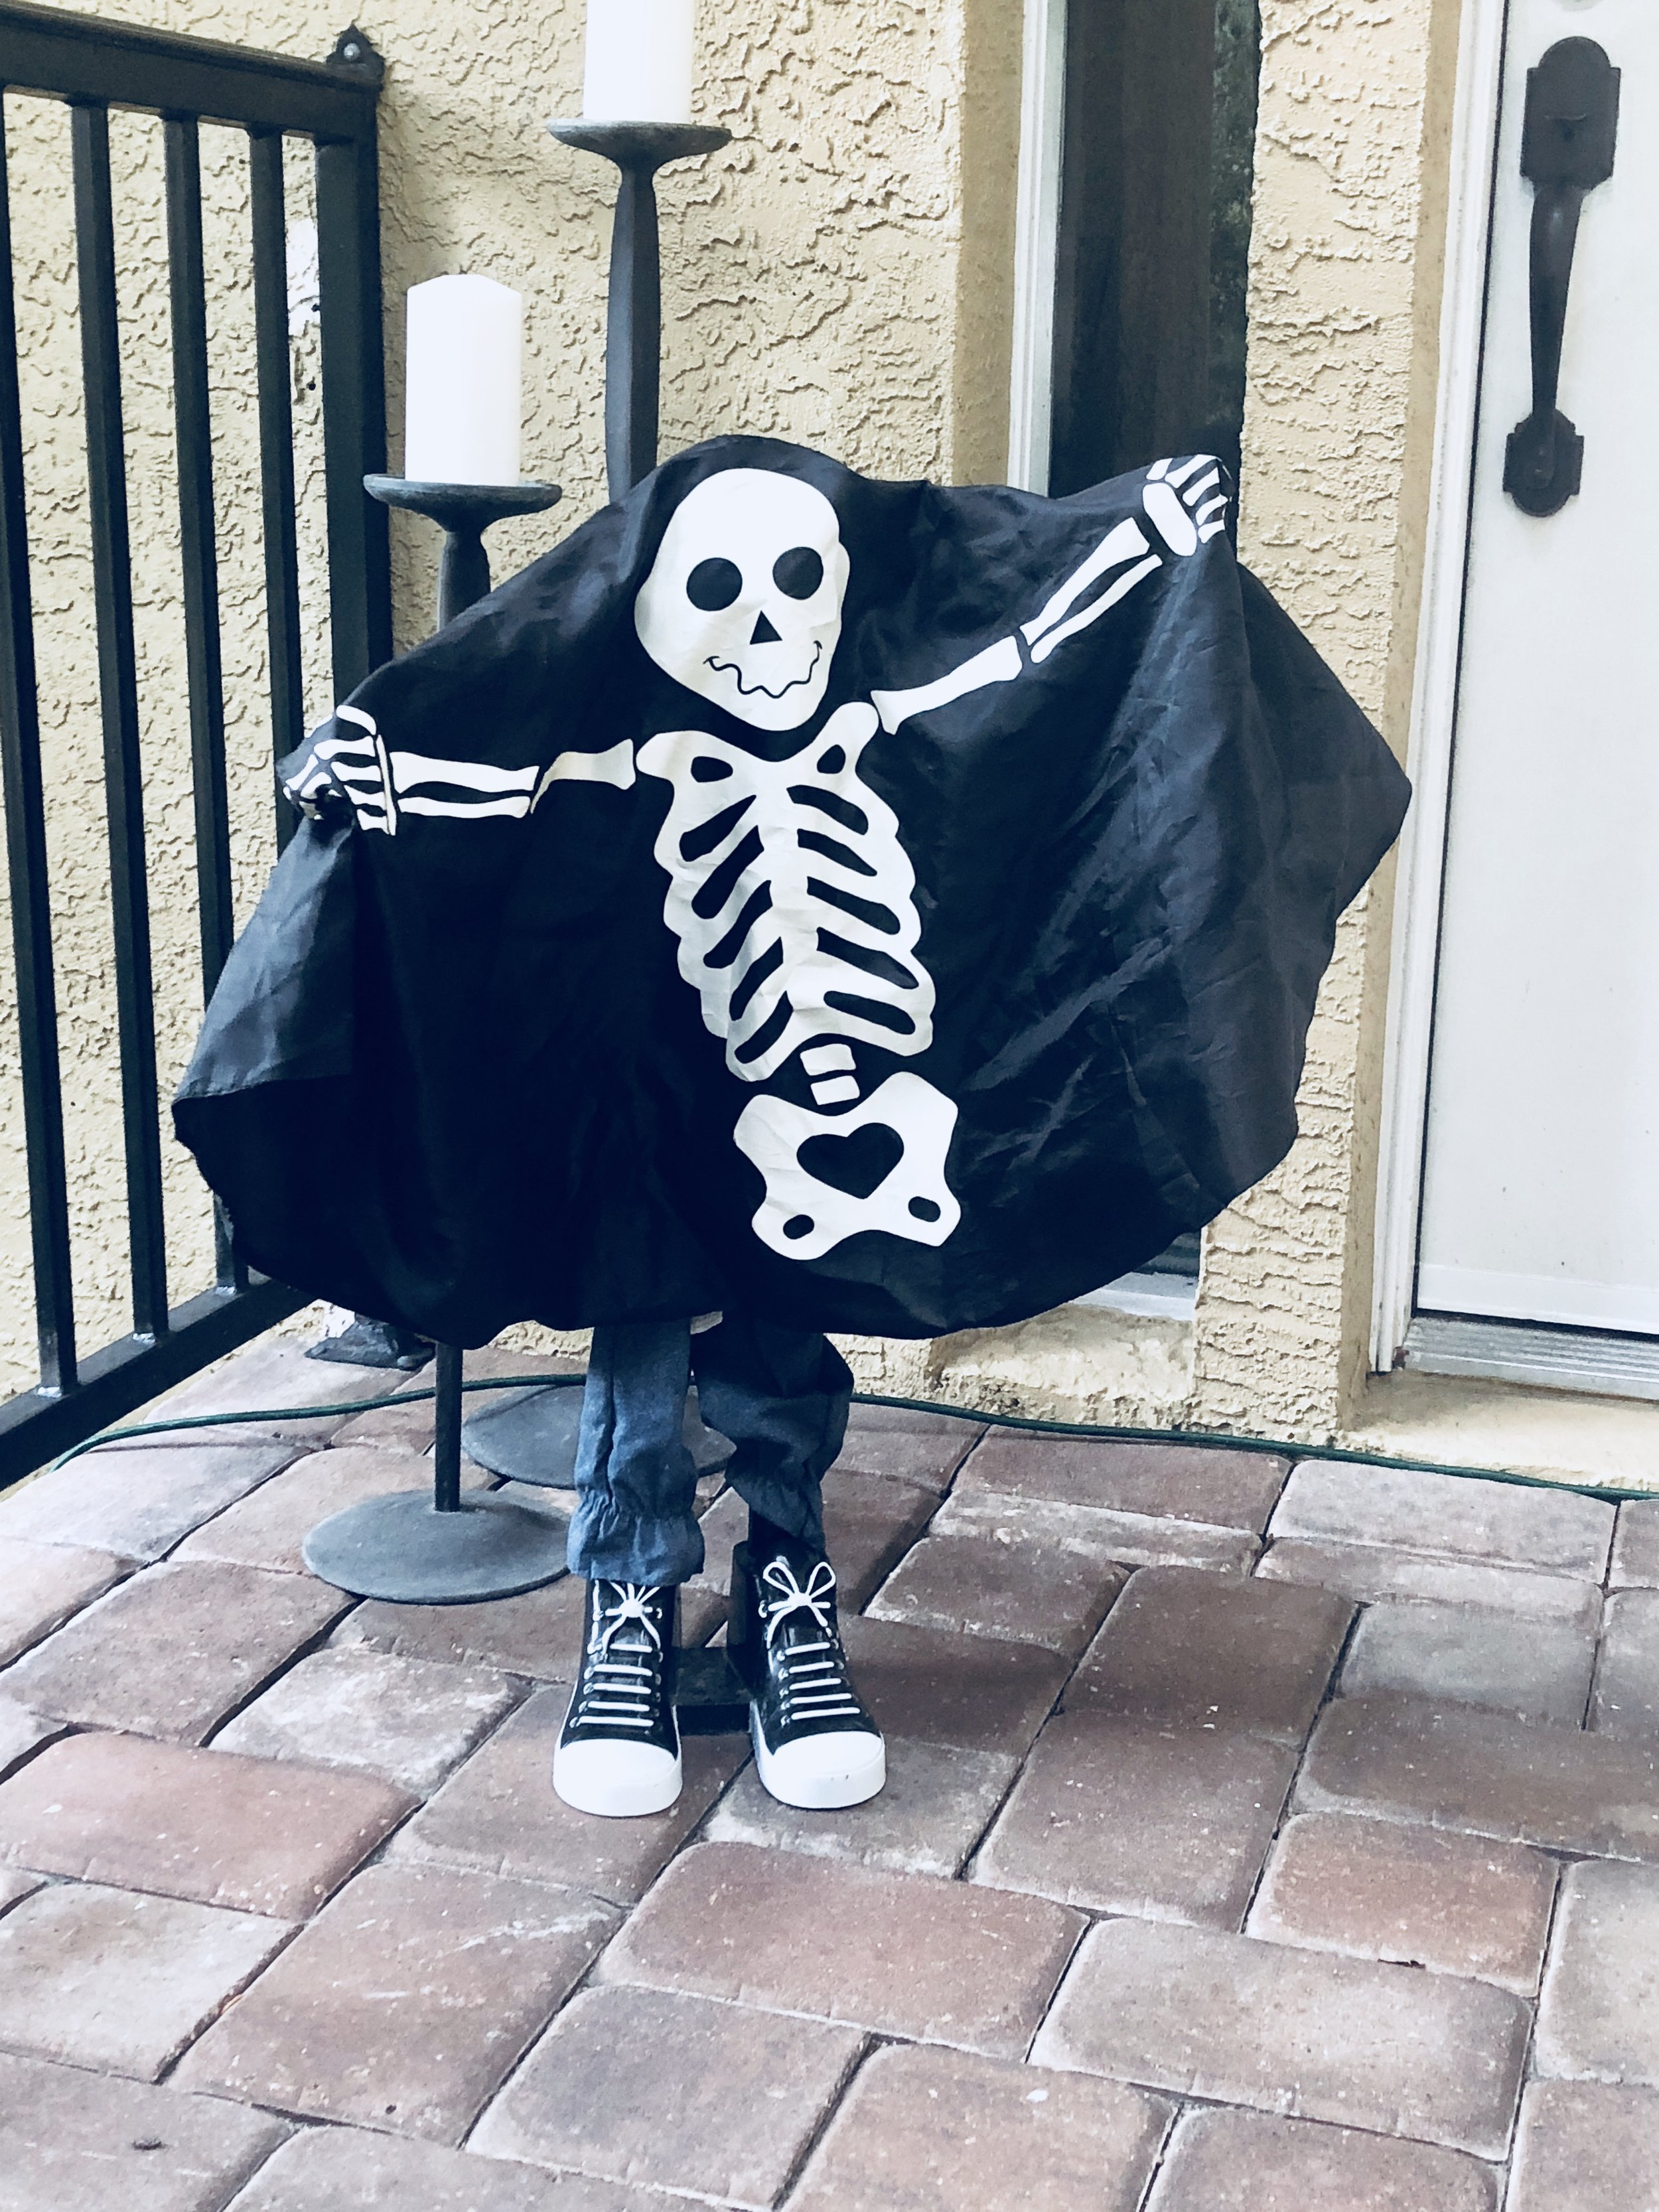 This little guy is one my favorite Halloween decorations we have - Check out this on on   Amazon